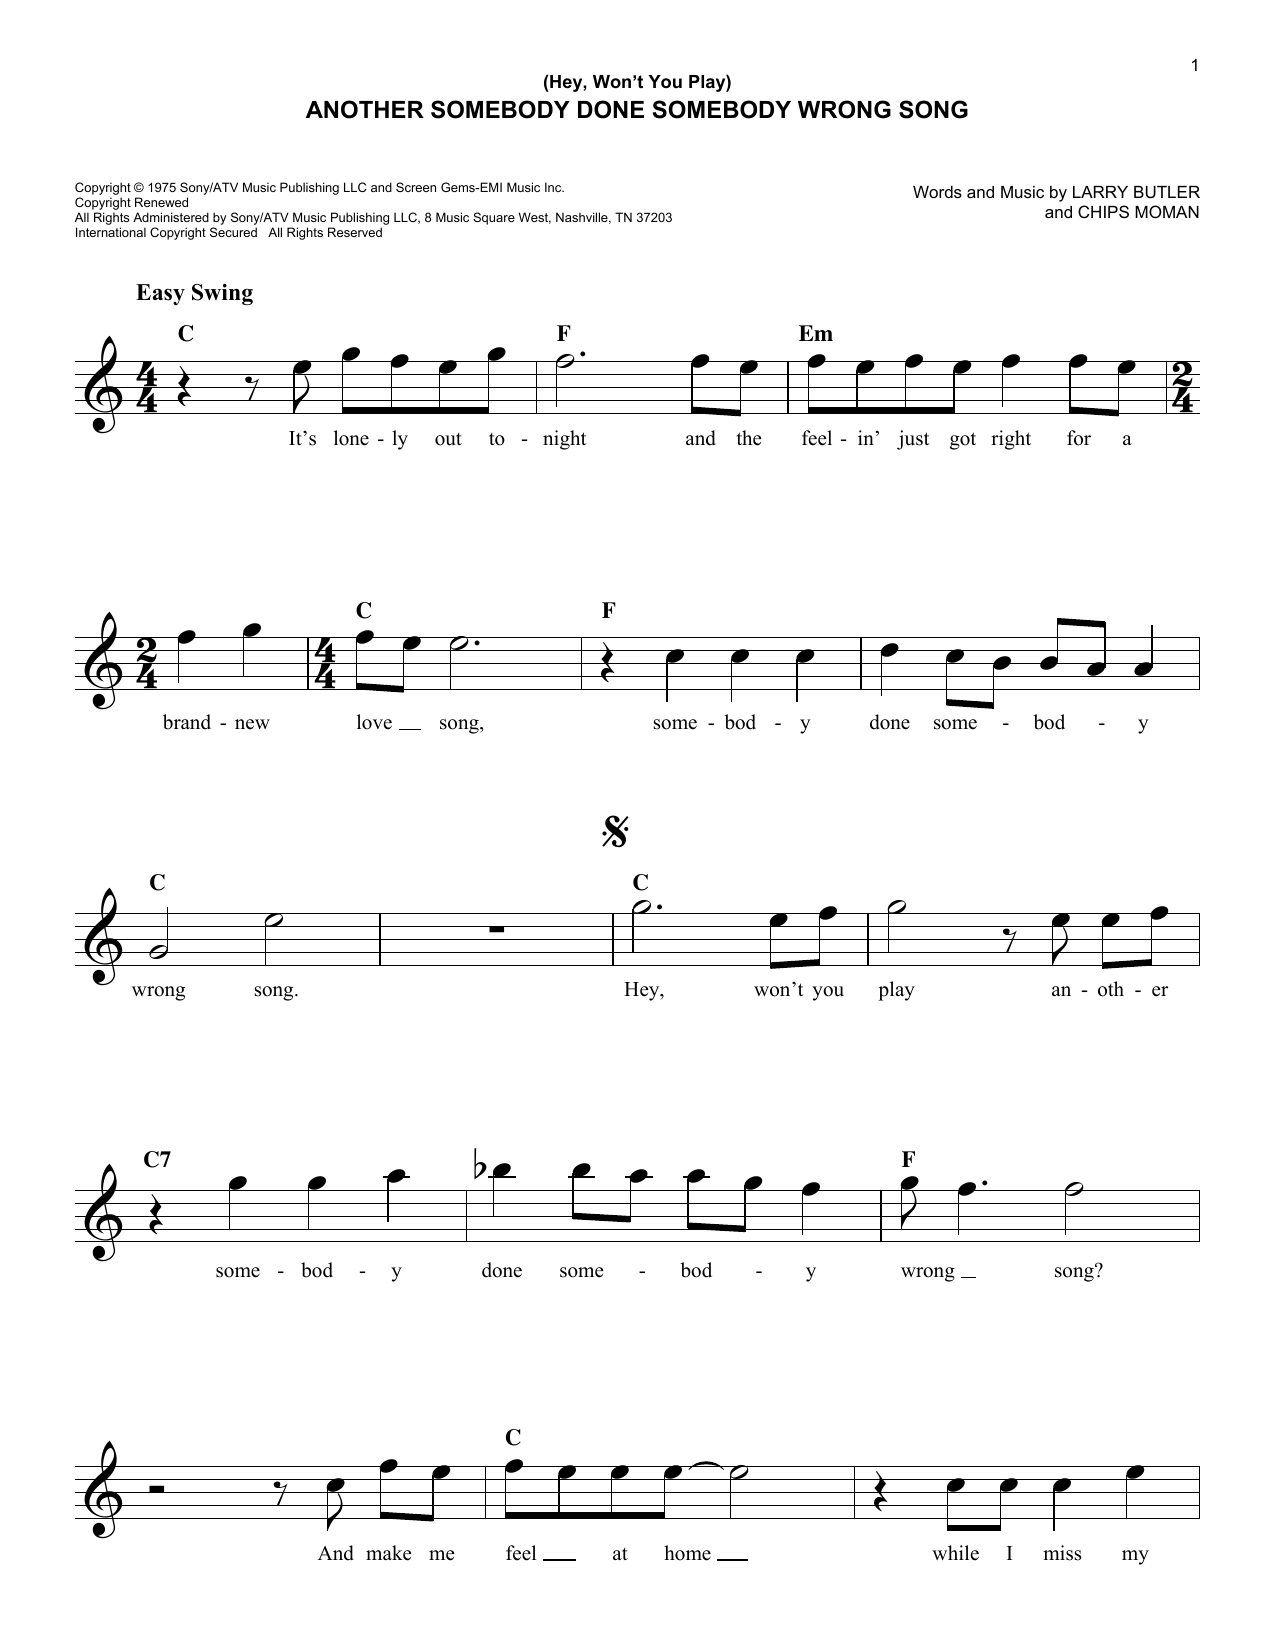 B.J. Thomas (Hey, Won't You Play) Another Somebody Done Somebody Wrong Song sheet music notes and chords